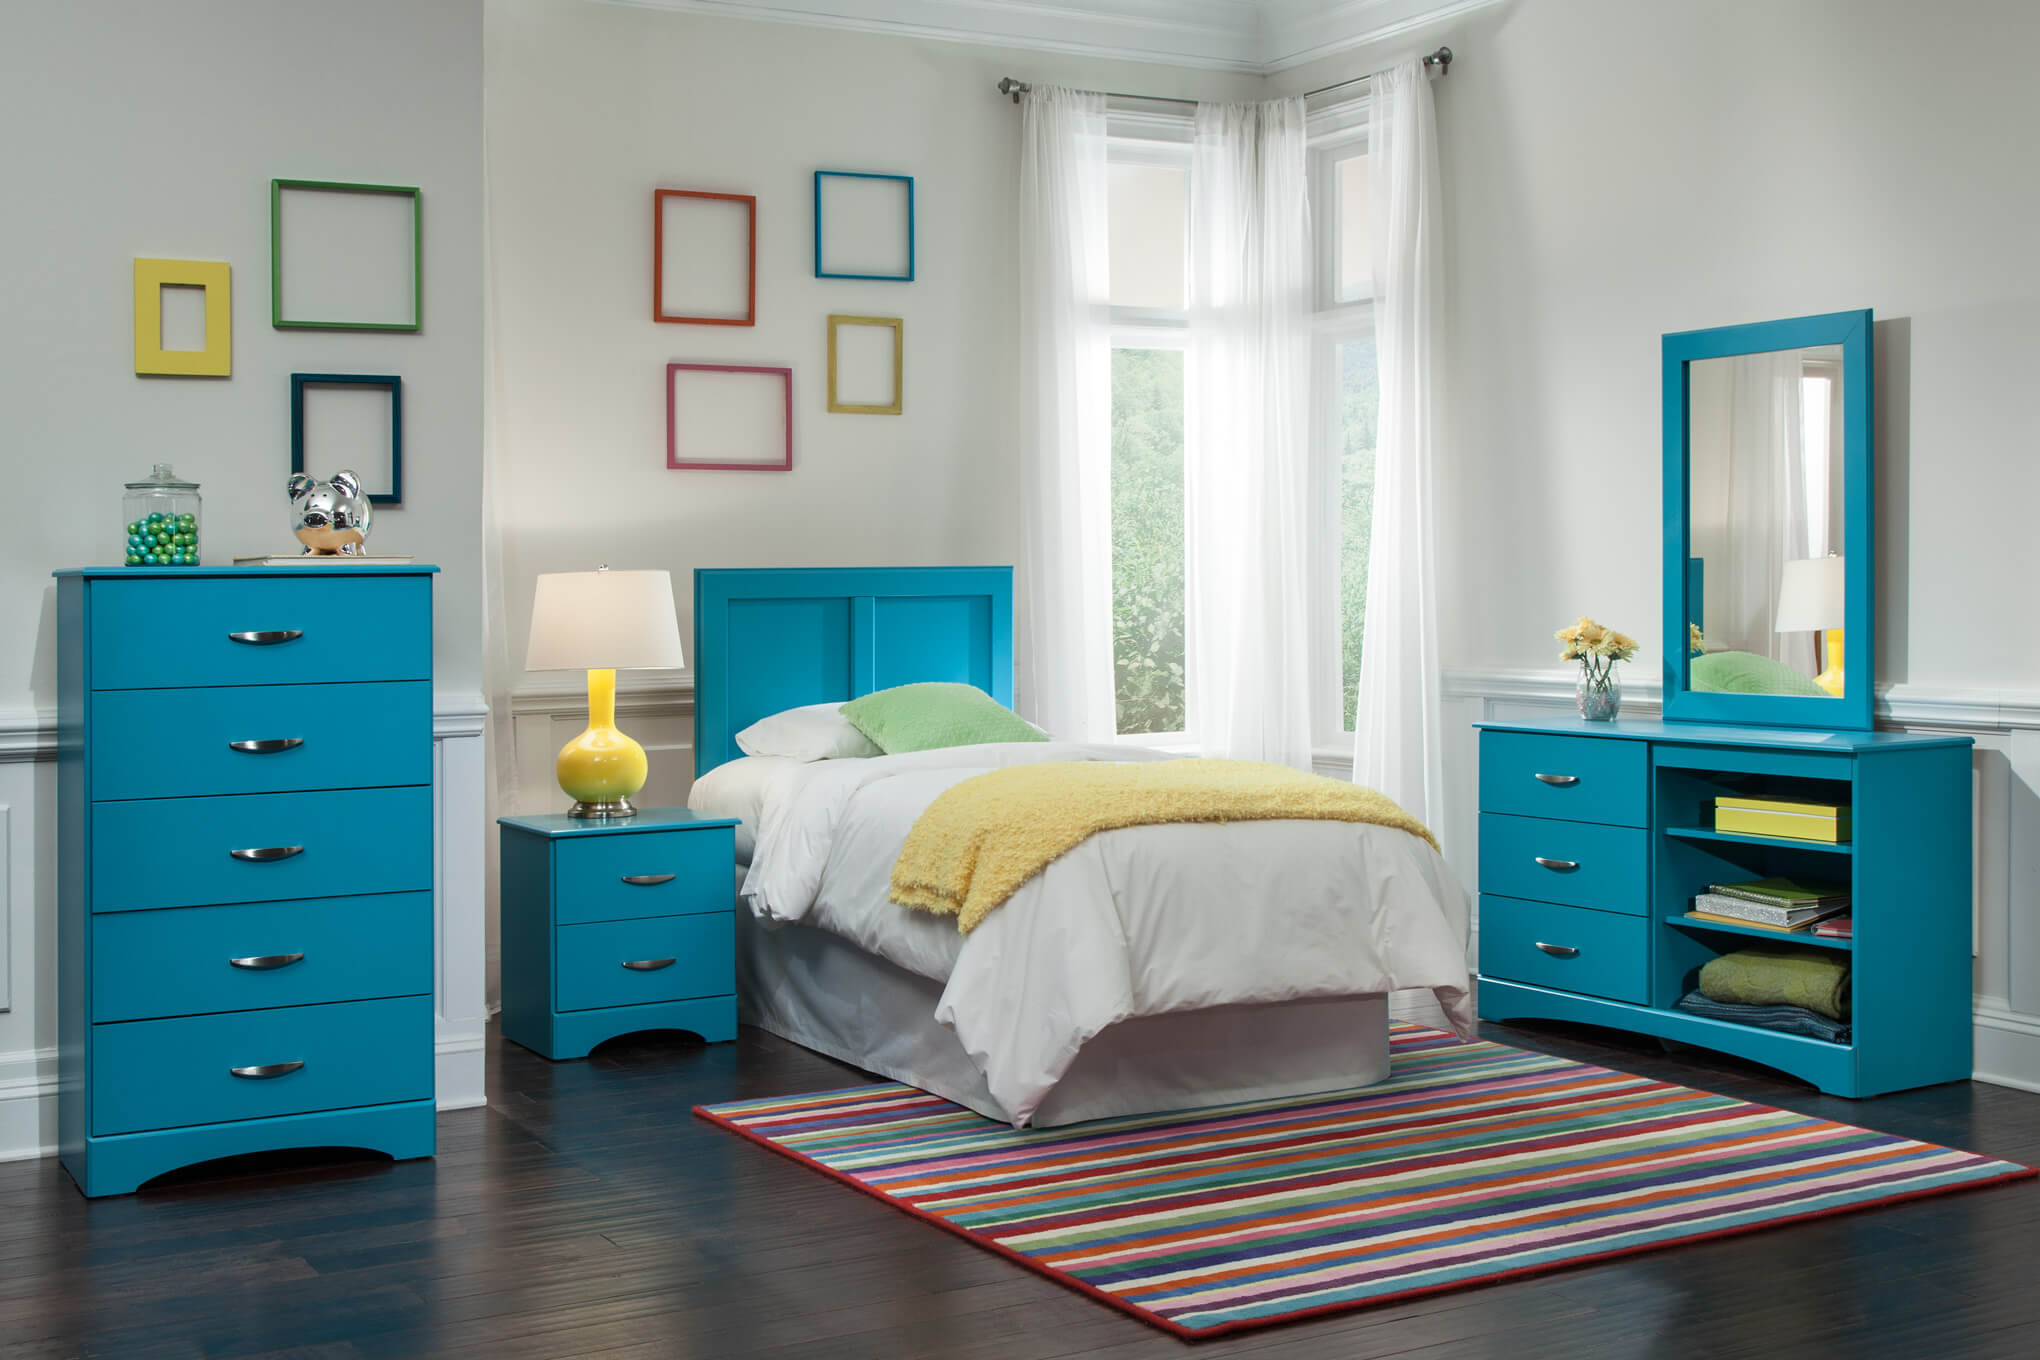 Turquoise bedroom furniture Turquoise Chalk Paint Urban Furniture Outlet Kith Turquoise Youth Bedroom Set Kids Bedroom Sets